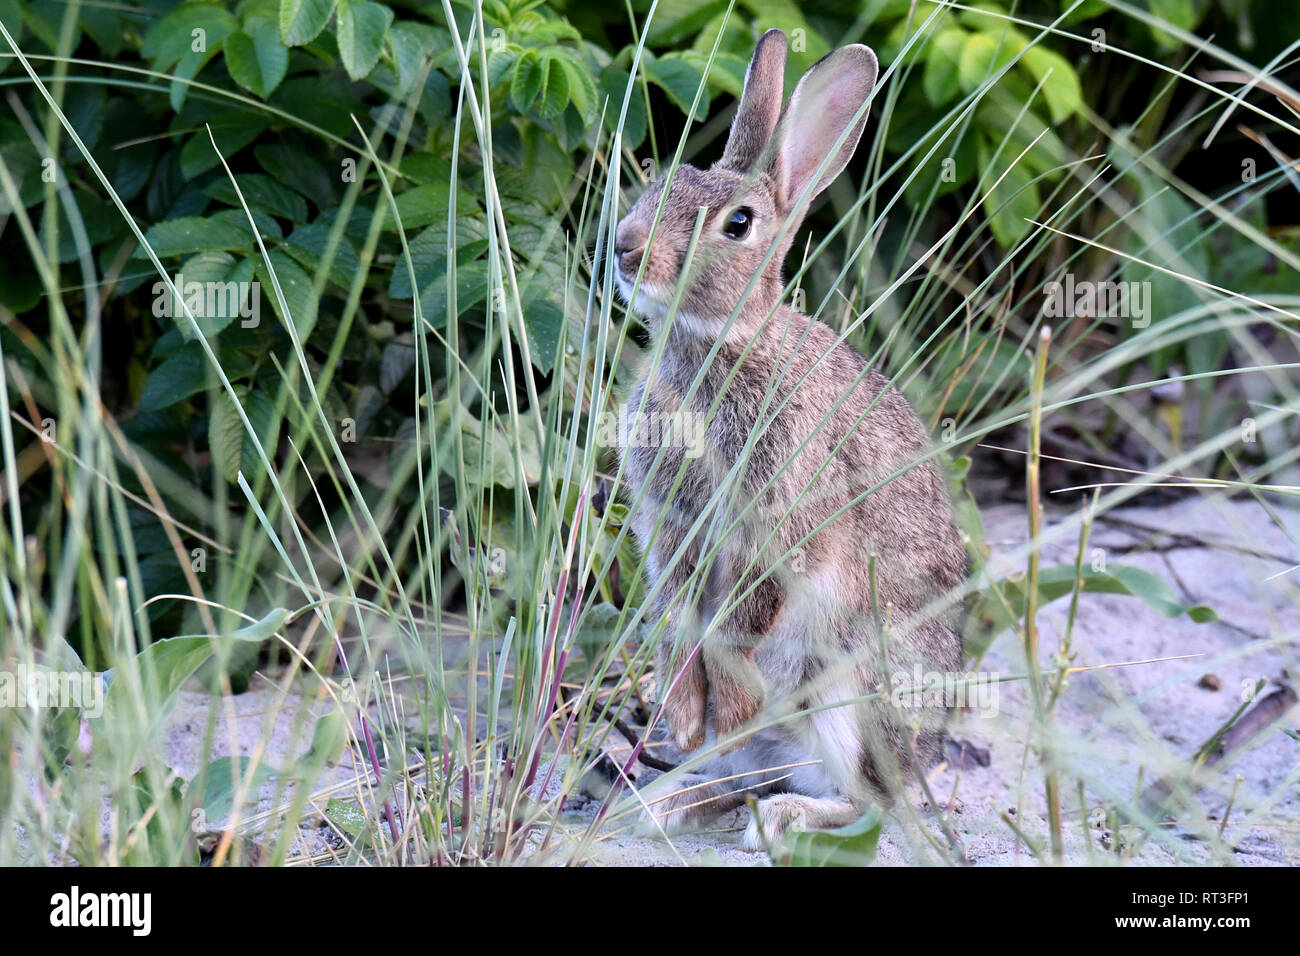 Cuniculus, local animals, free living person animals, grey sporty little jobs, grey sporty little jobs, hare-like, hunting-cash game, rabbit fur, rabb - Stock Image